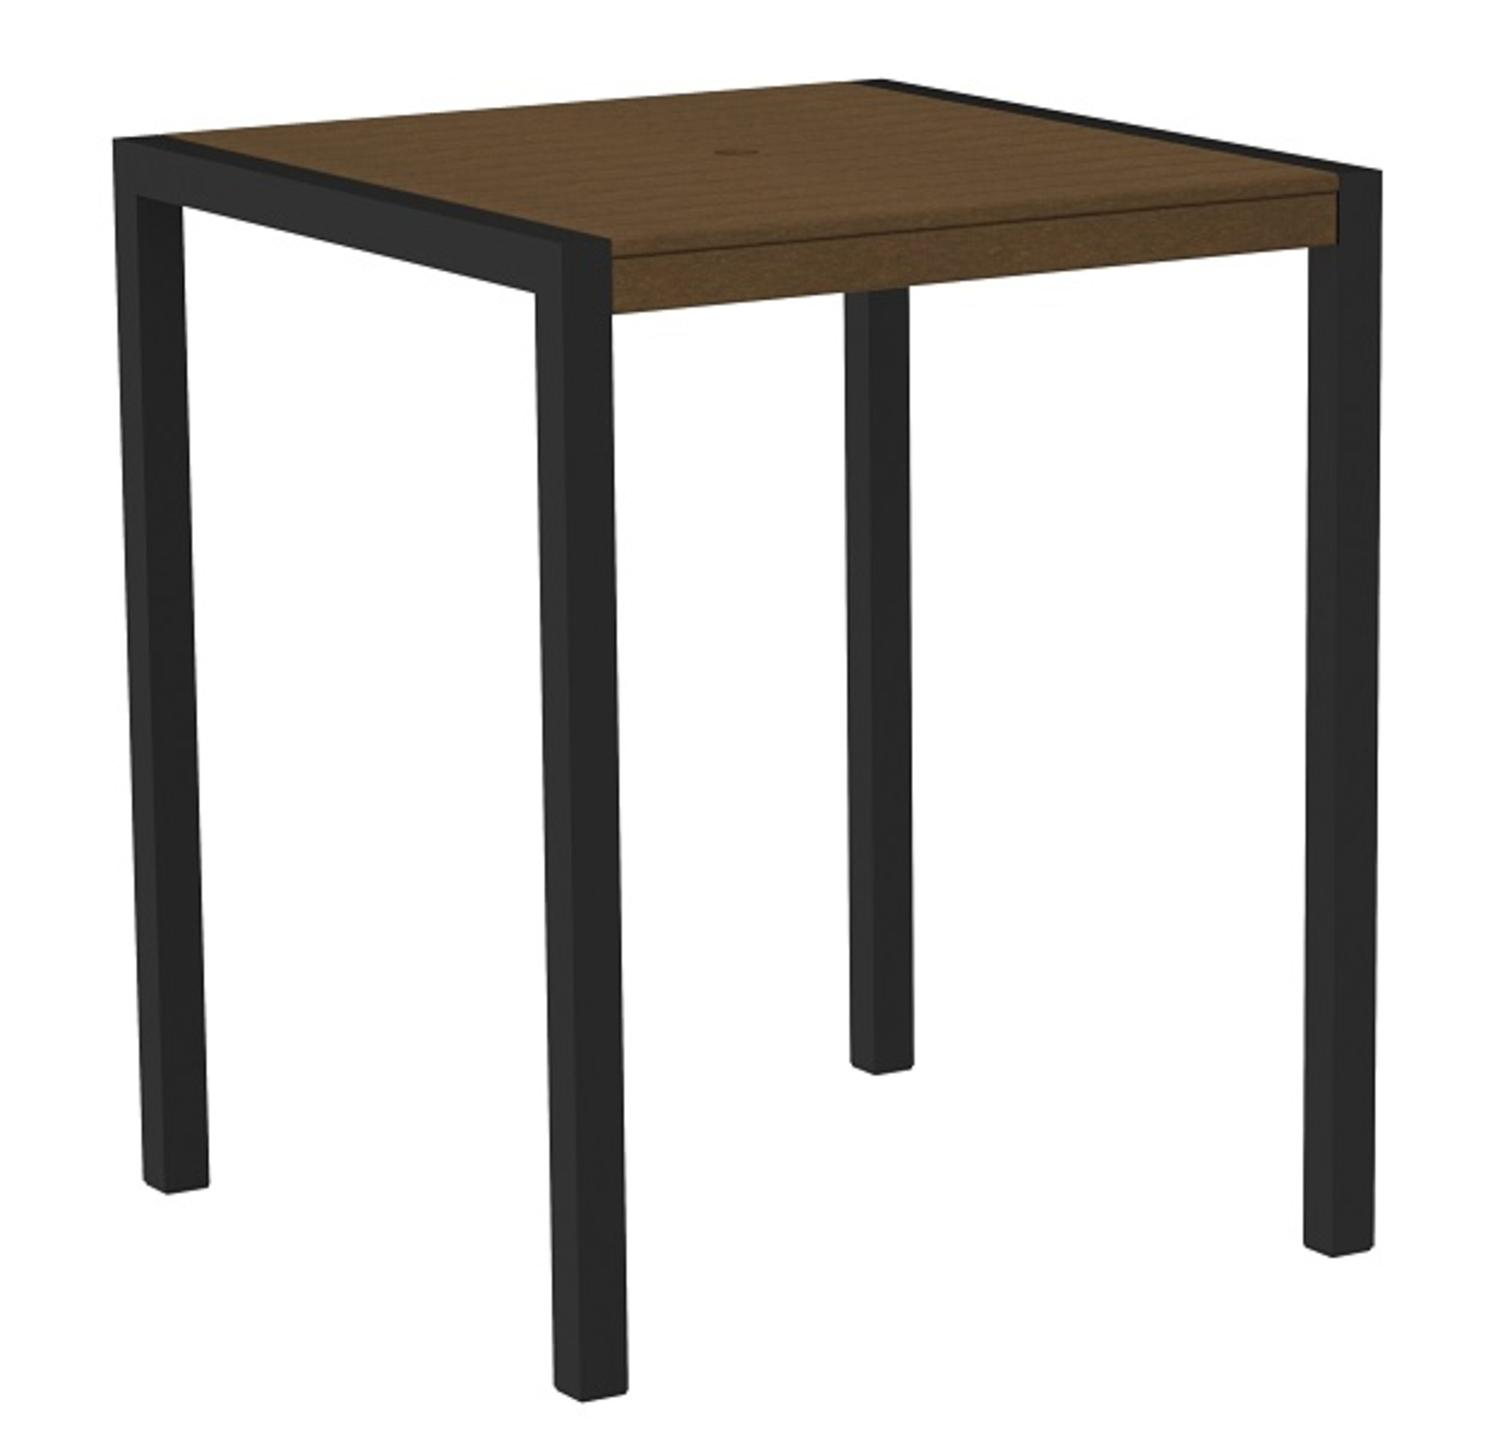 "42"" Outdoor Recycled Earth-Friendly Pub Table Teak Brown with Black Frame by Eco-Friendly Furnishings"